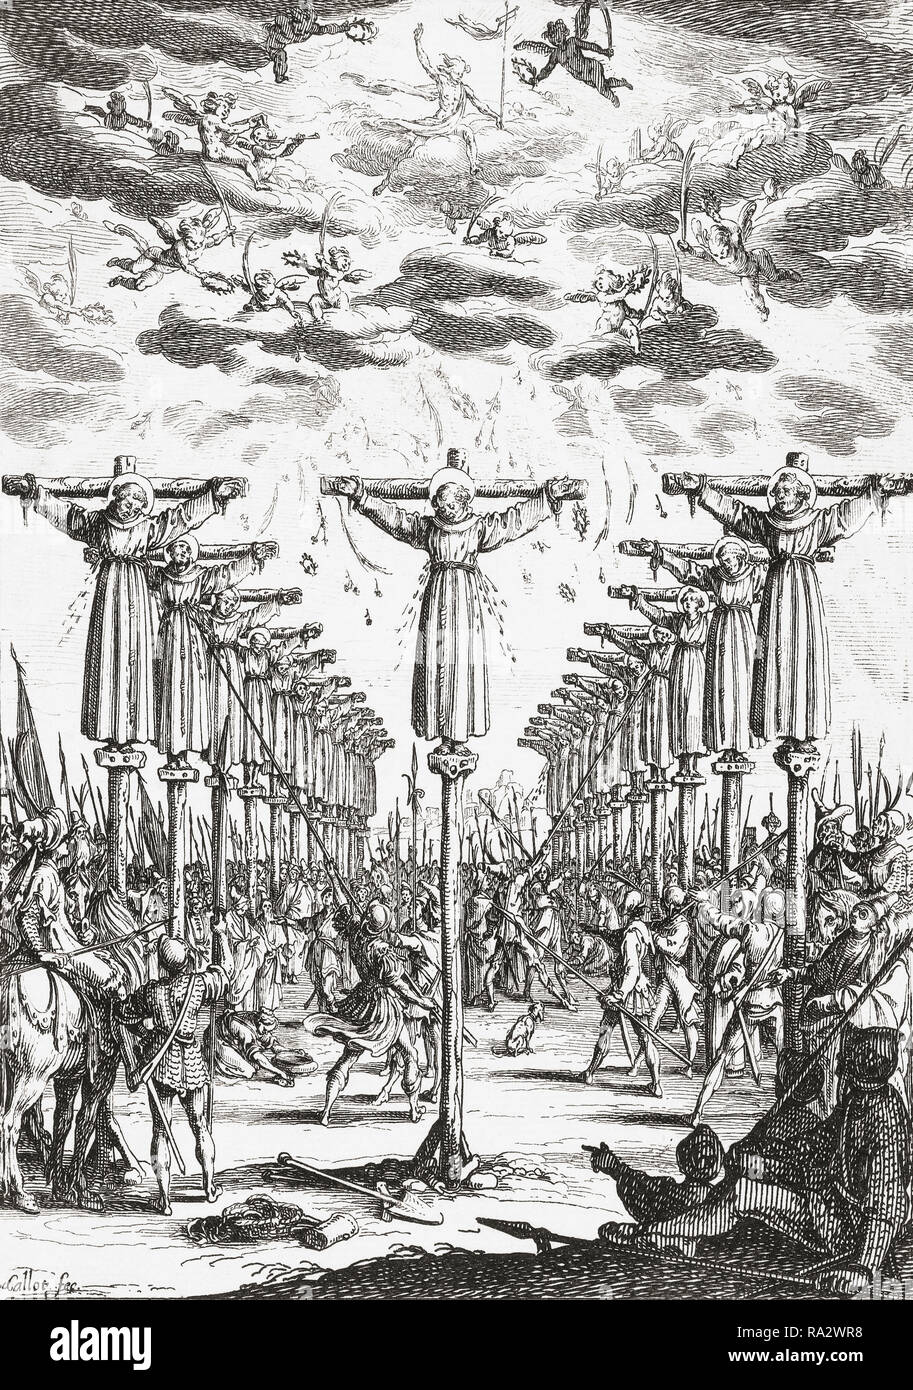 16th century Christian martyrs in Japan.  The engraving by French artist Jacques Callot, 1592-1635, which is dated 1627, may refer to either of two episodes of martyrdom in Nagasaki, Japan where, in 1597, 26 Christians were executed or in 1632, when 55 Christians were killed in what is known as the Great Genna Martyrdom. - Stock Image